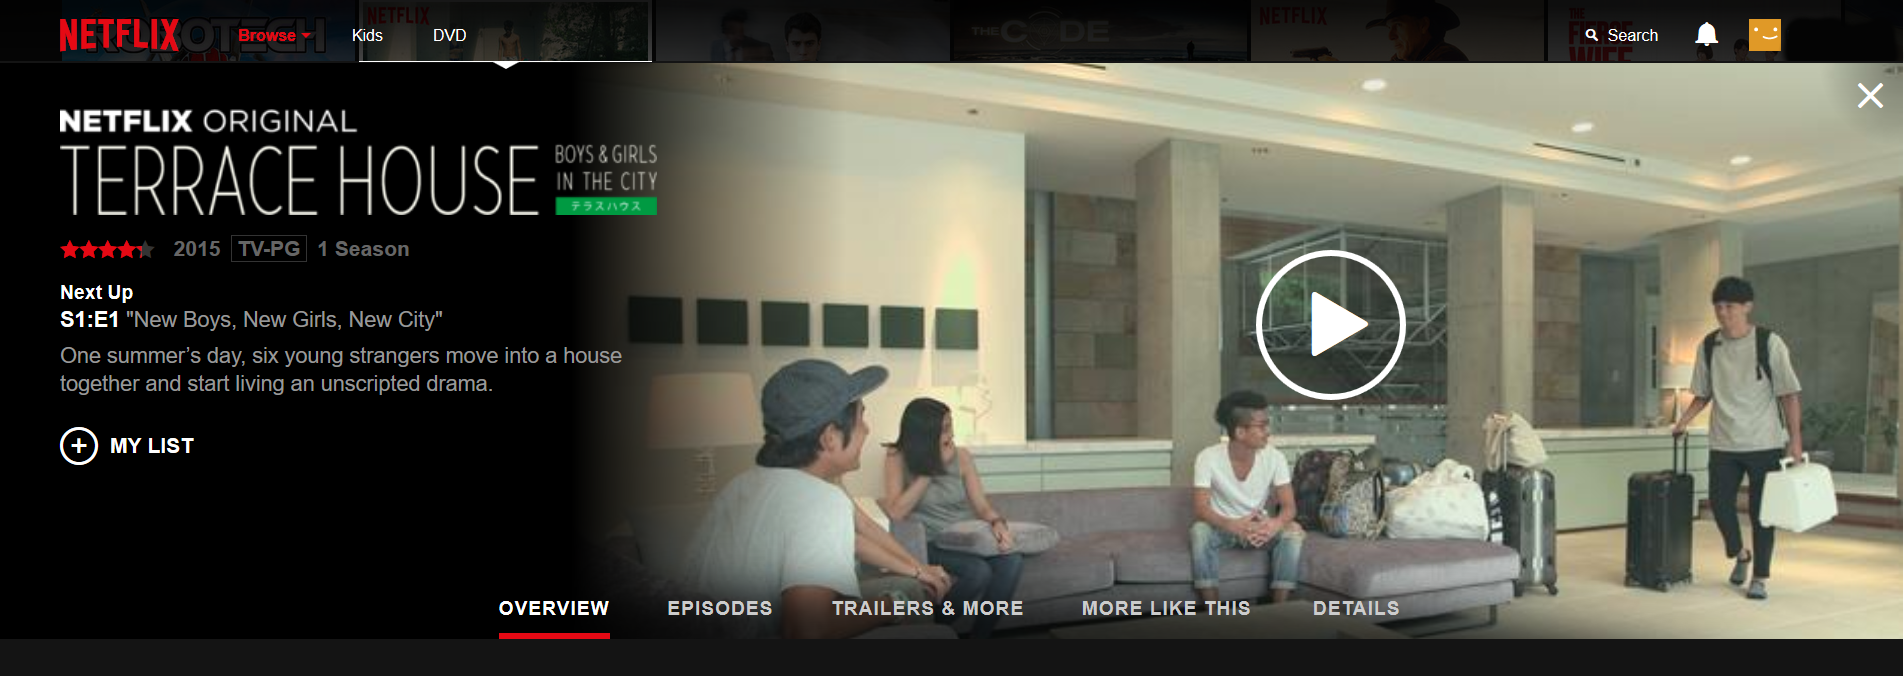 Netflix scores big with terrace house an for Terrace house reality show